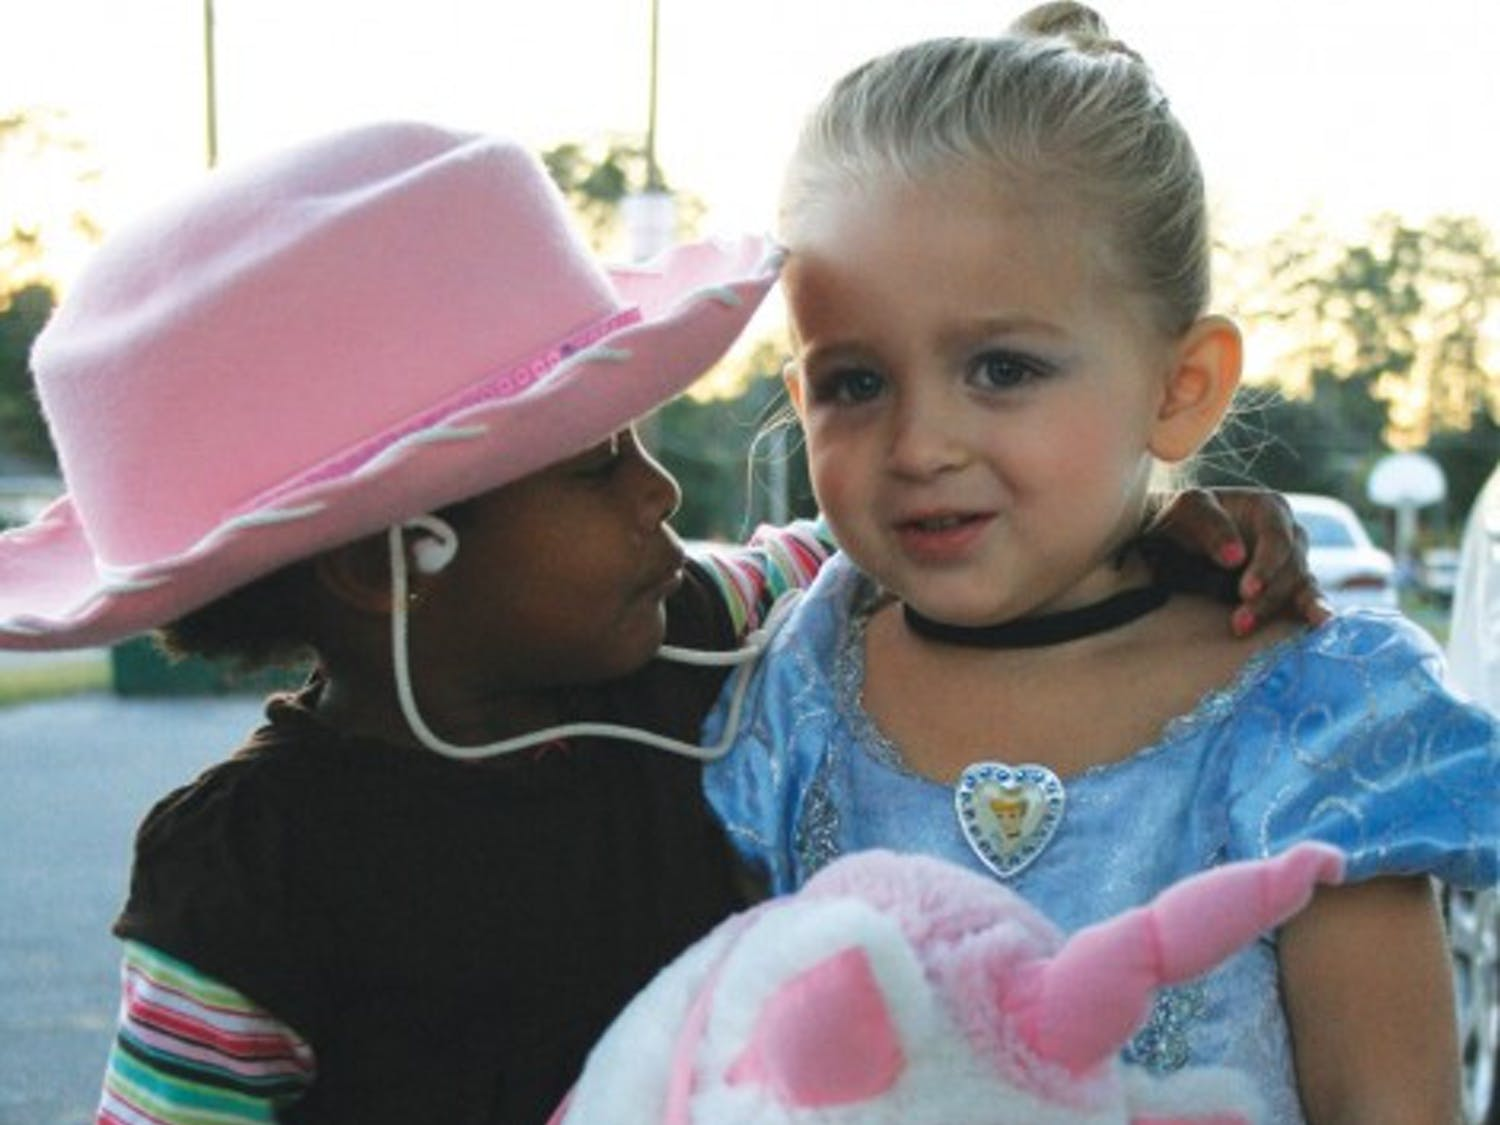 Two-year-old Farrah, right, and Davis spend Halloween together with Williams, Davis' adopted father, and his mother. Farrah and Davis are cousins, but Williams said they are growing up like sisters.